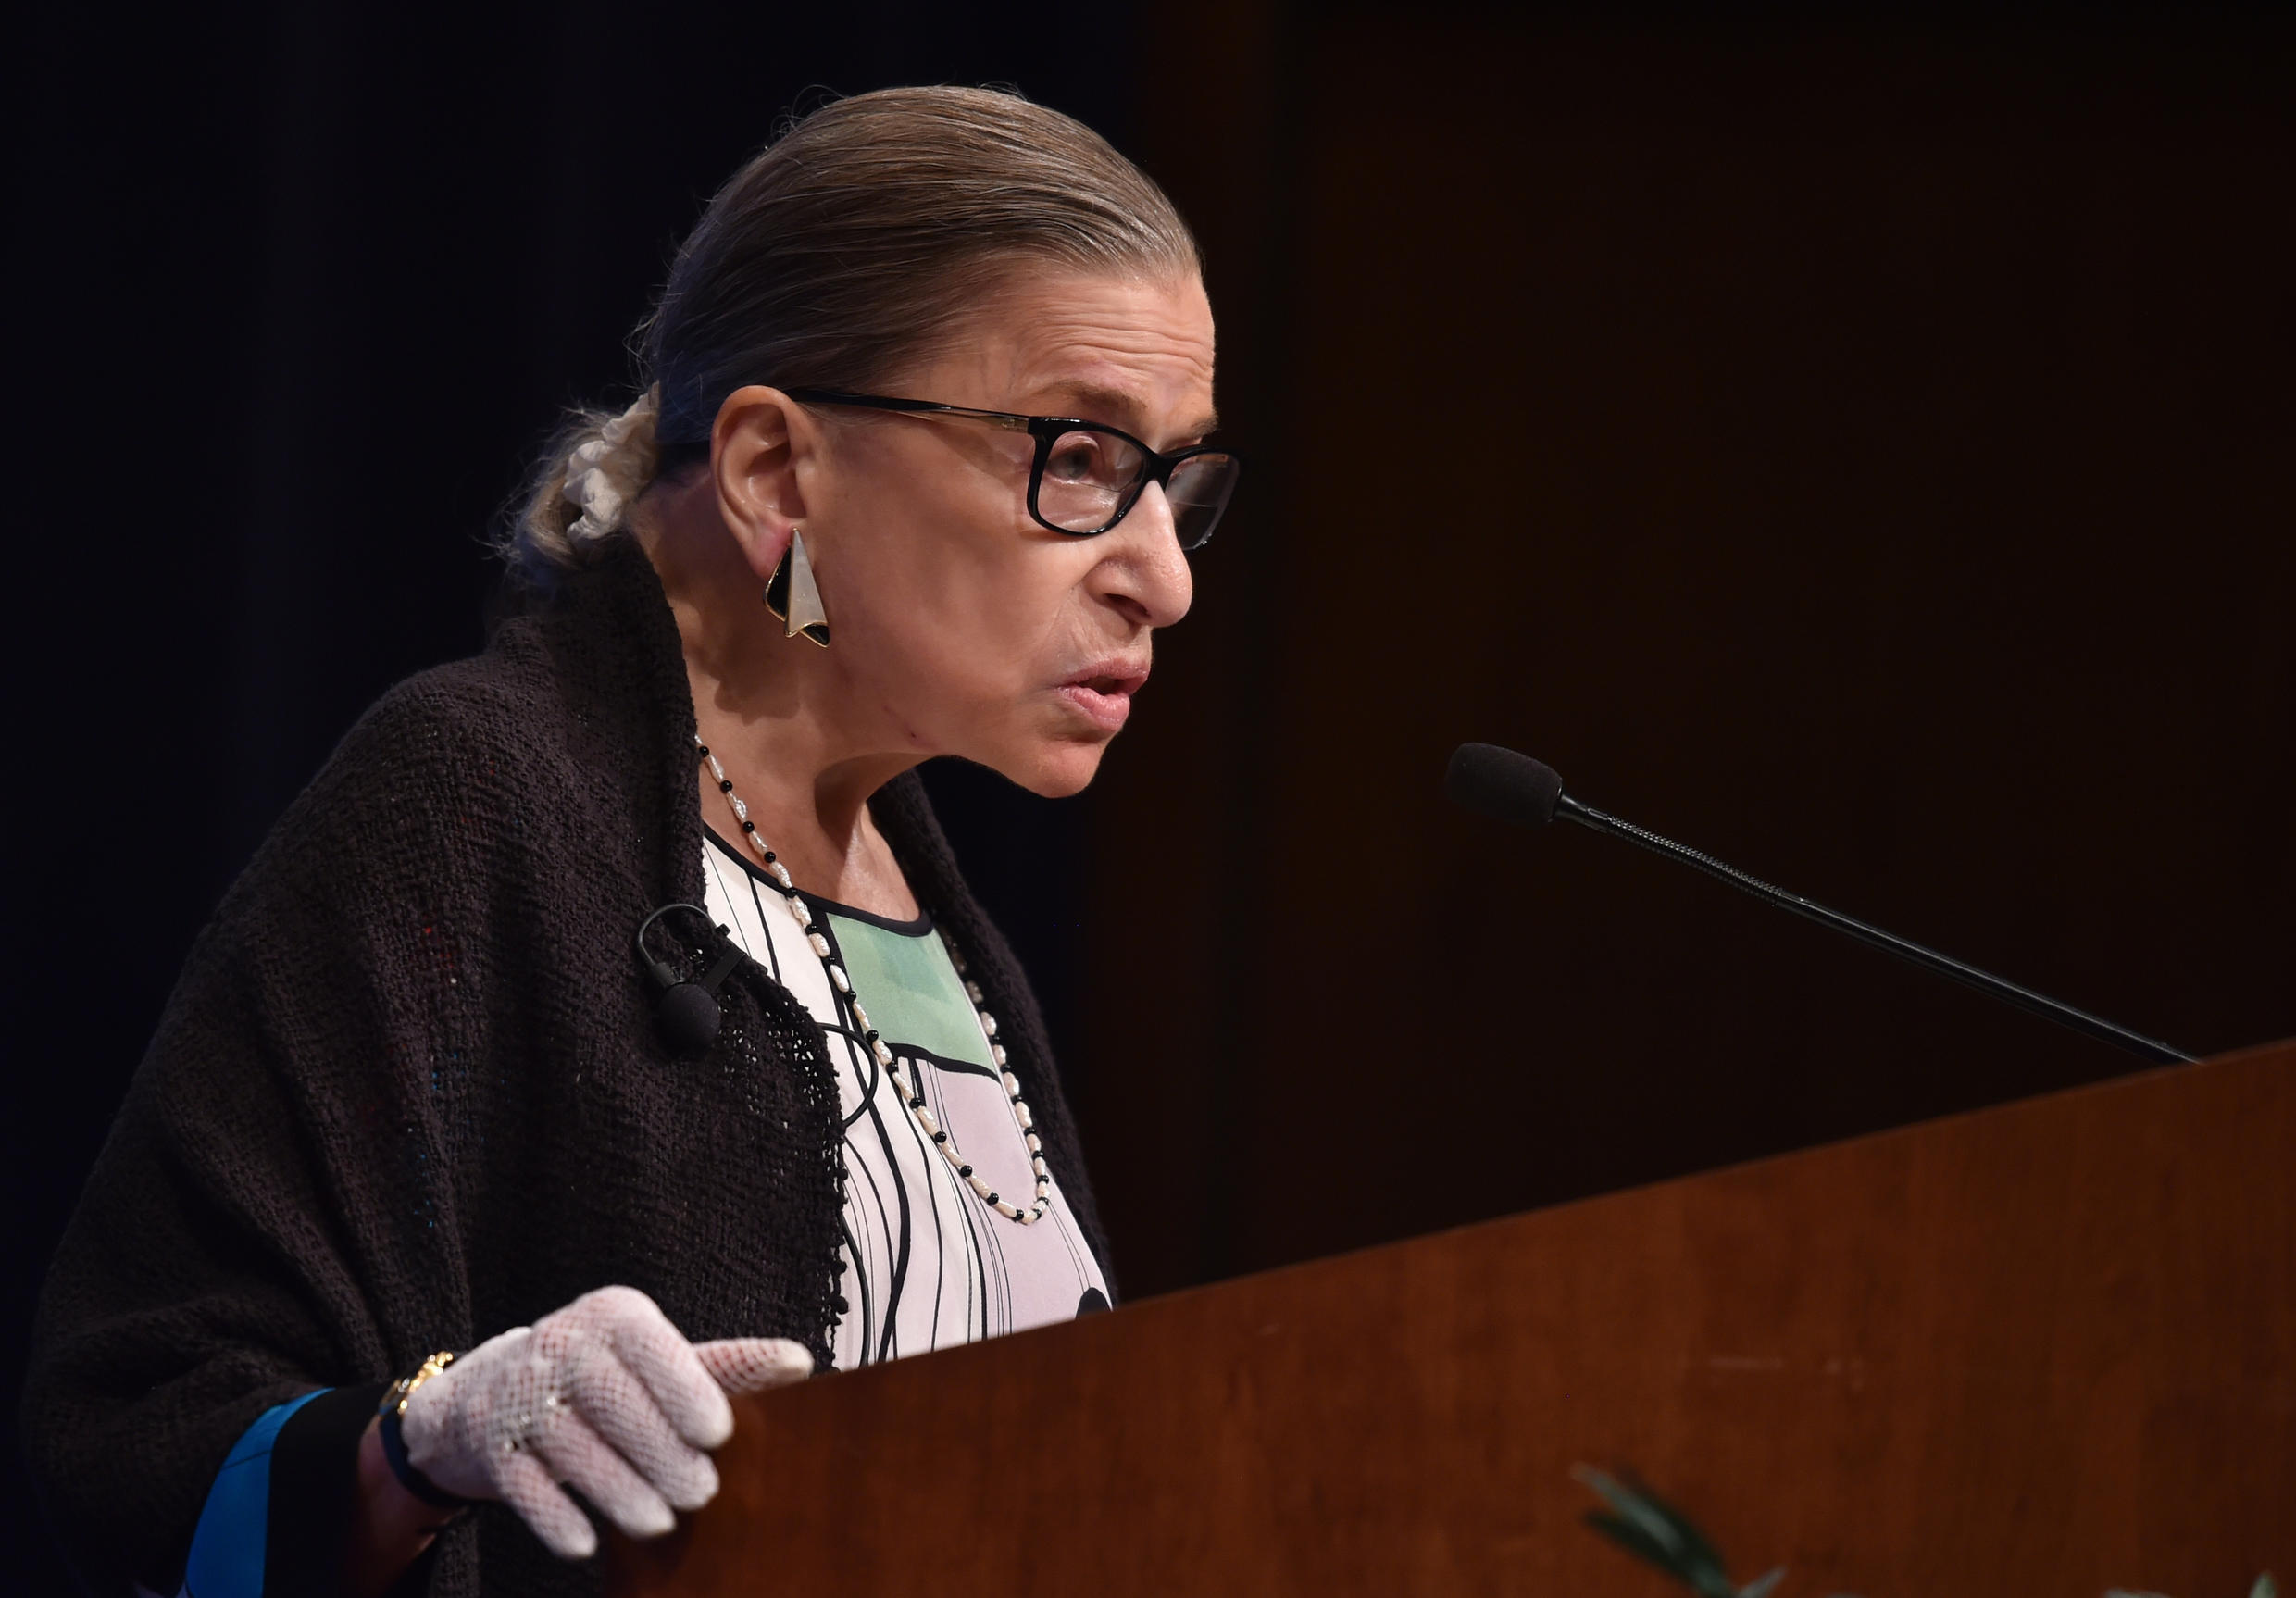 US Supreme Court Justice Ruth Bader Ginsburg speaks to first year Georgetown University law students in Washington, DC. on September 20, 2017.